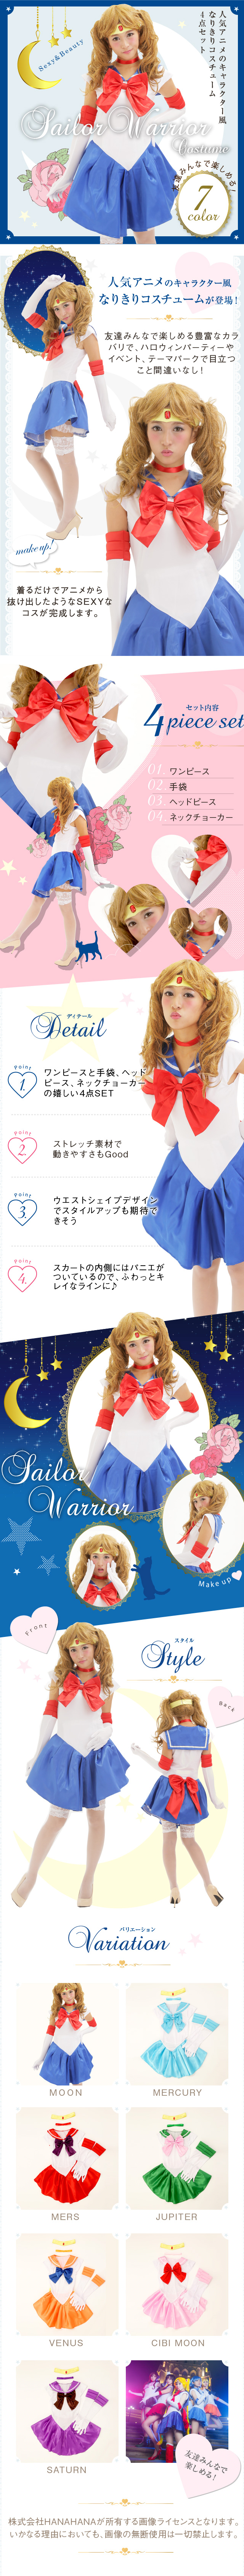 Sailor Warrior Costume